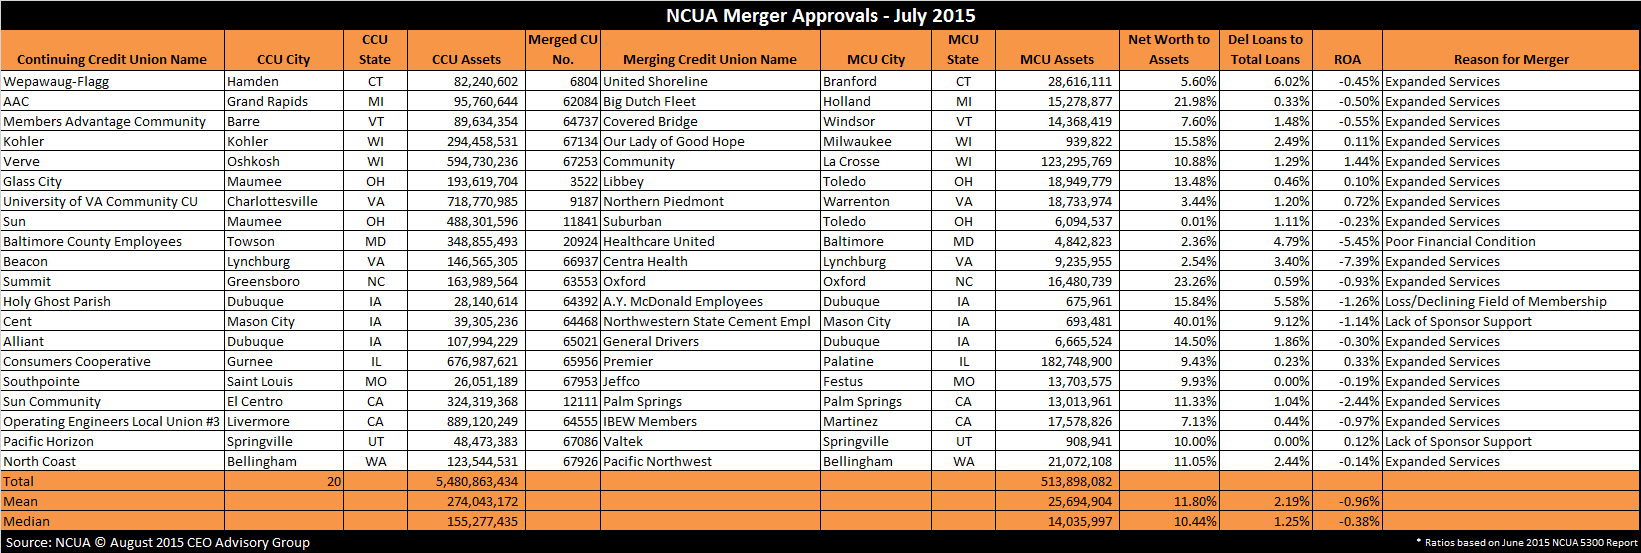 NCUA Credit Union Merger Approvals July 2015